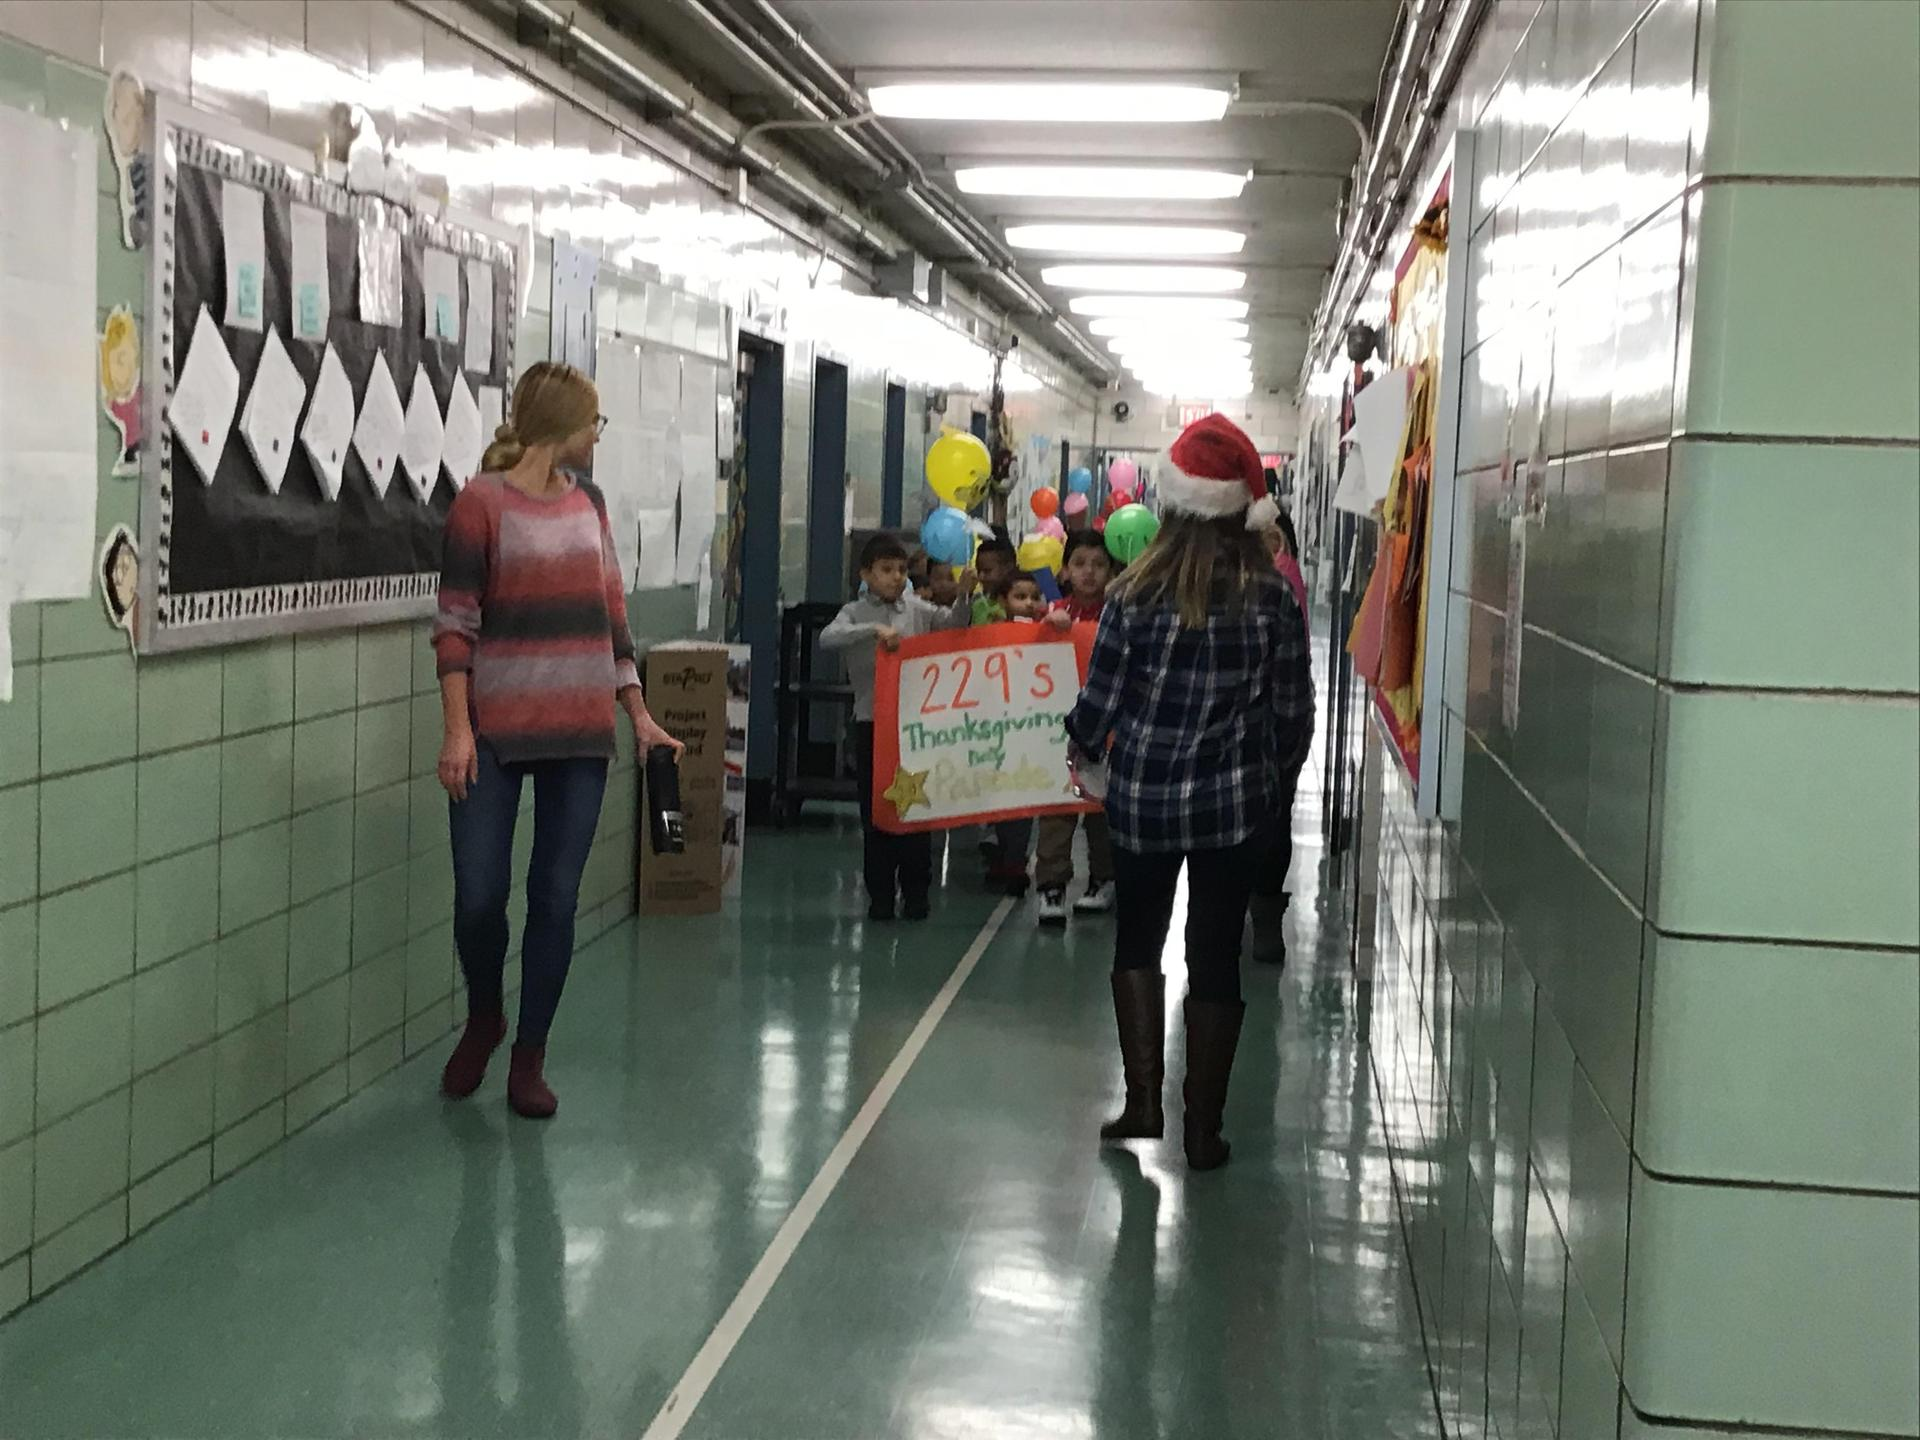 students parading in school hallway with balloons and teacher